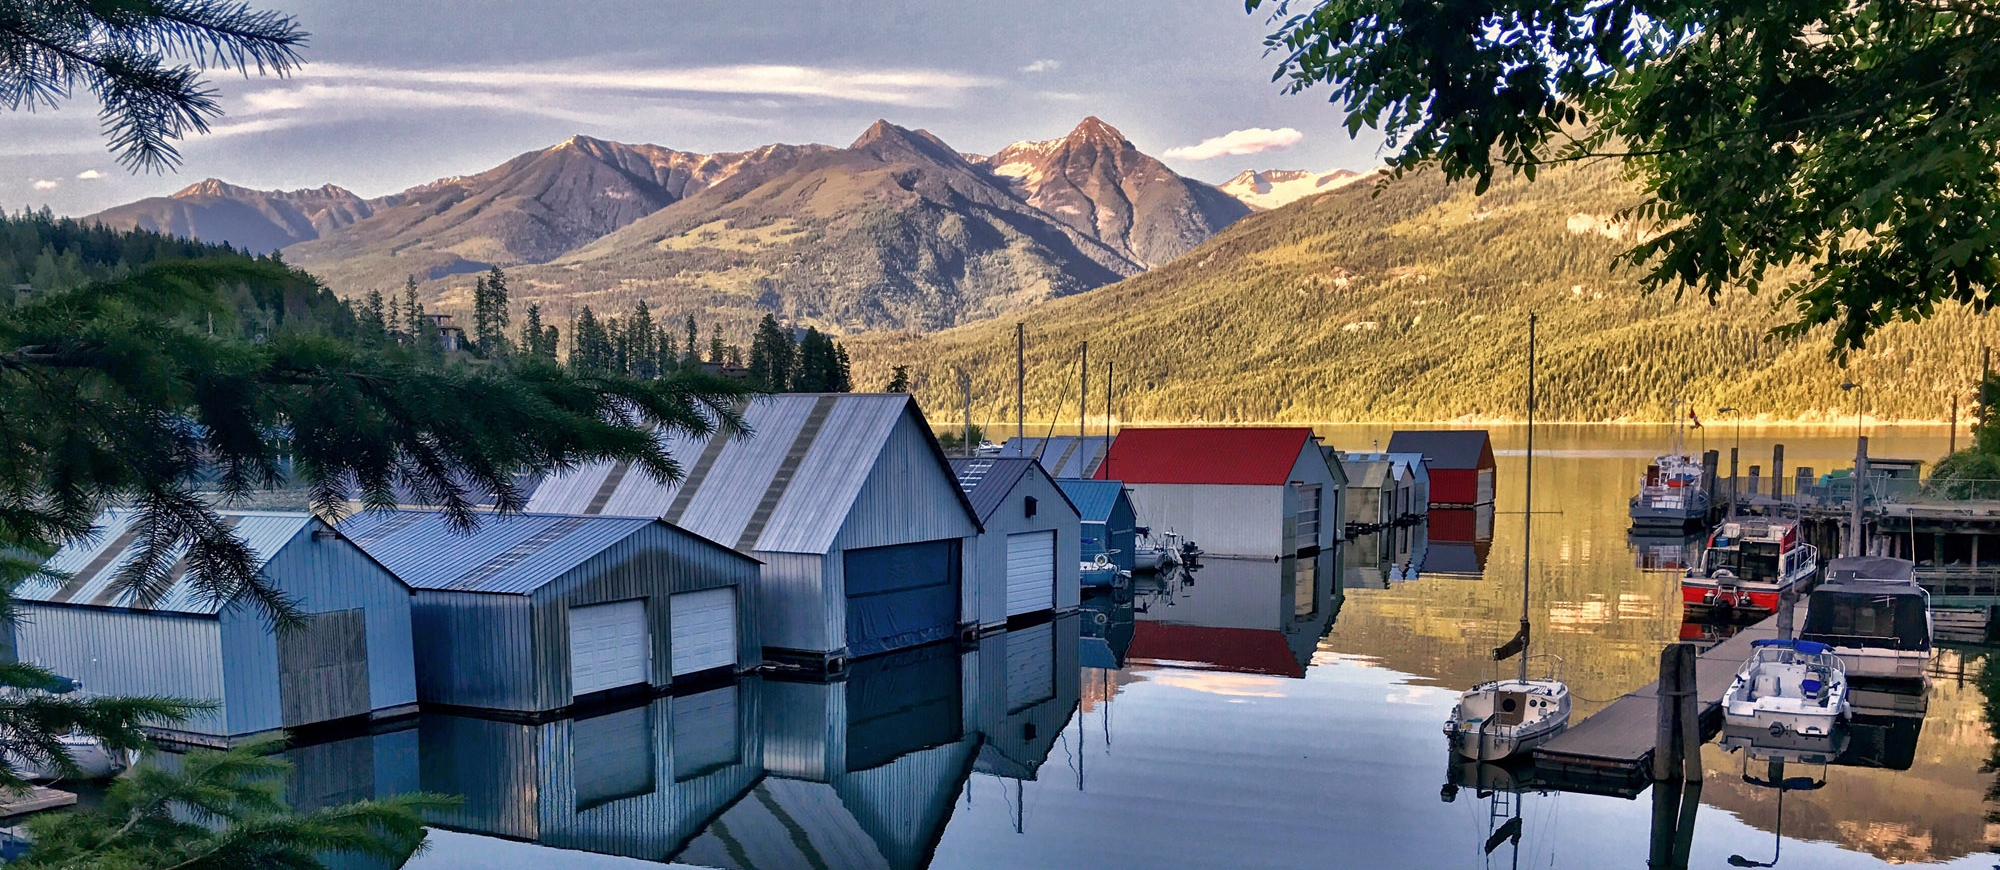 The boat houses in Kaslo BC with a very clear reflection in water and mountains in the background